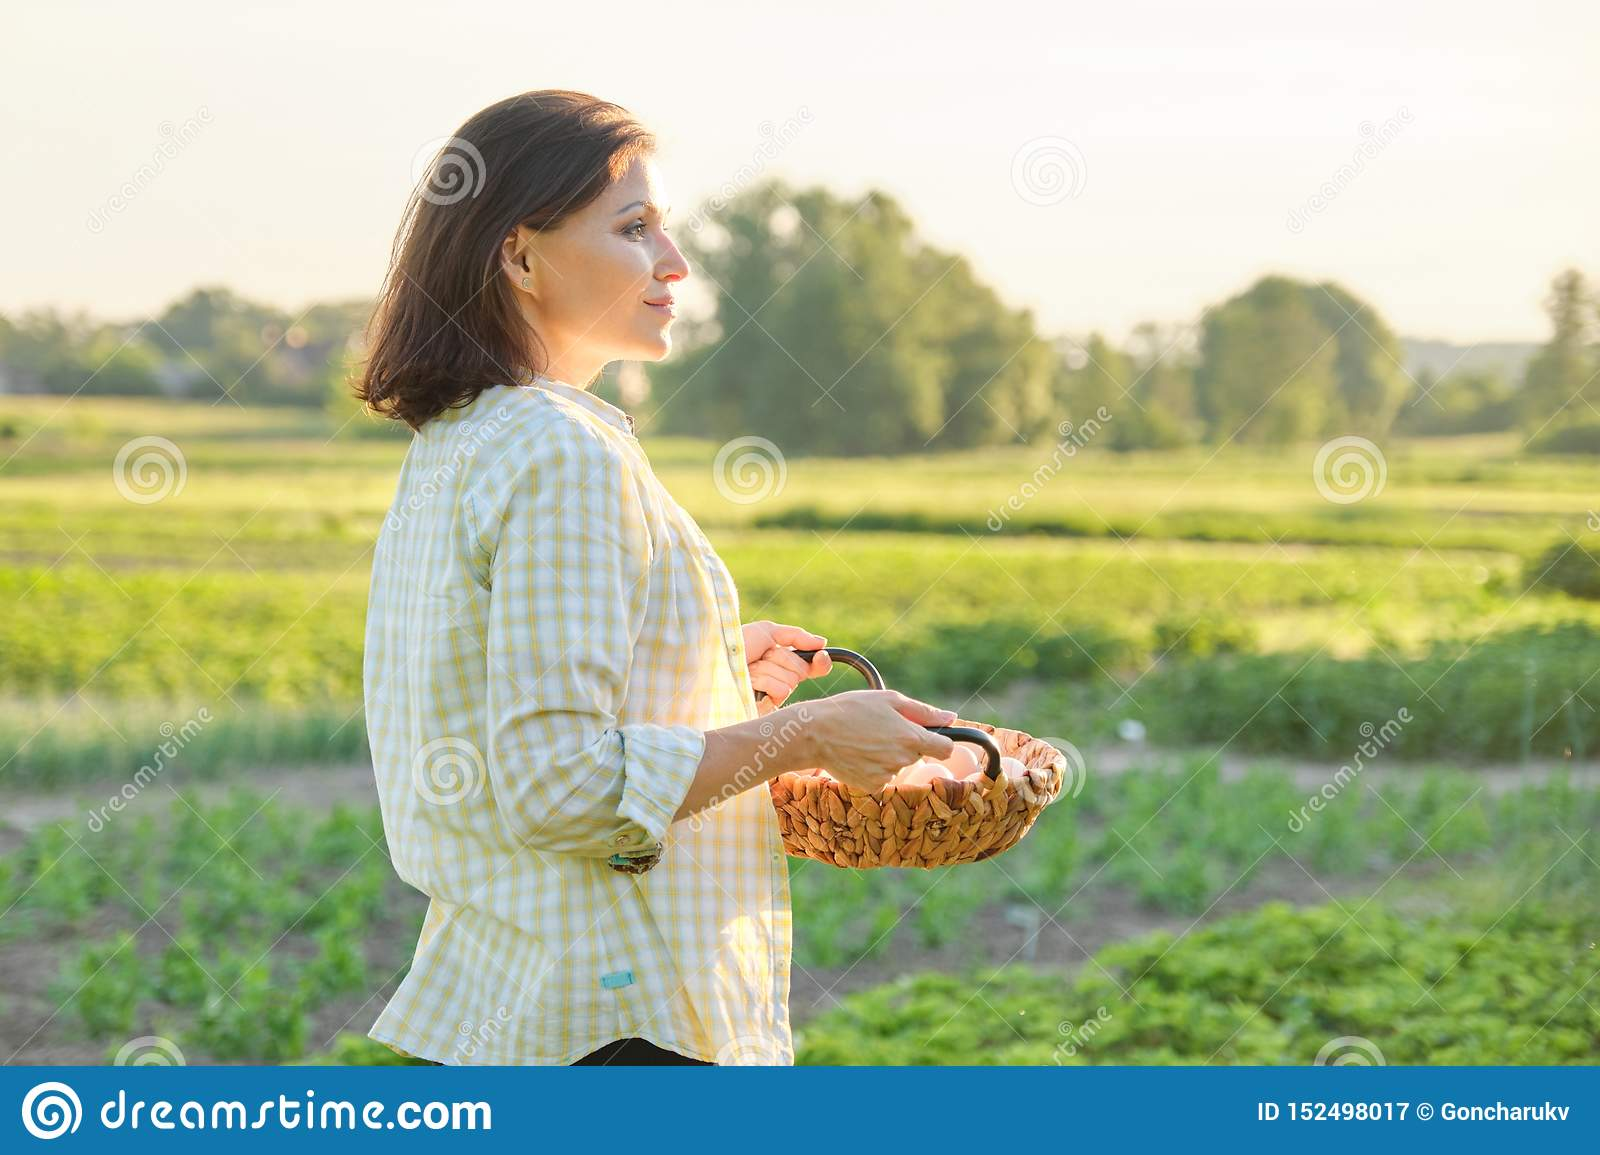 Mature beautiful woman farmer with basket of fresh eggs